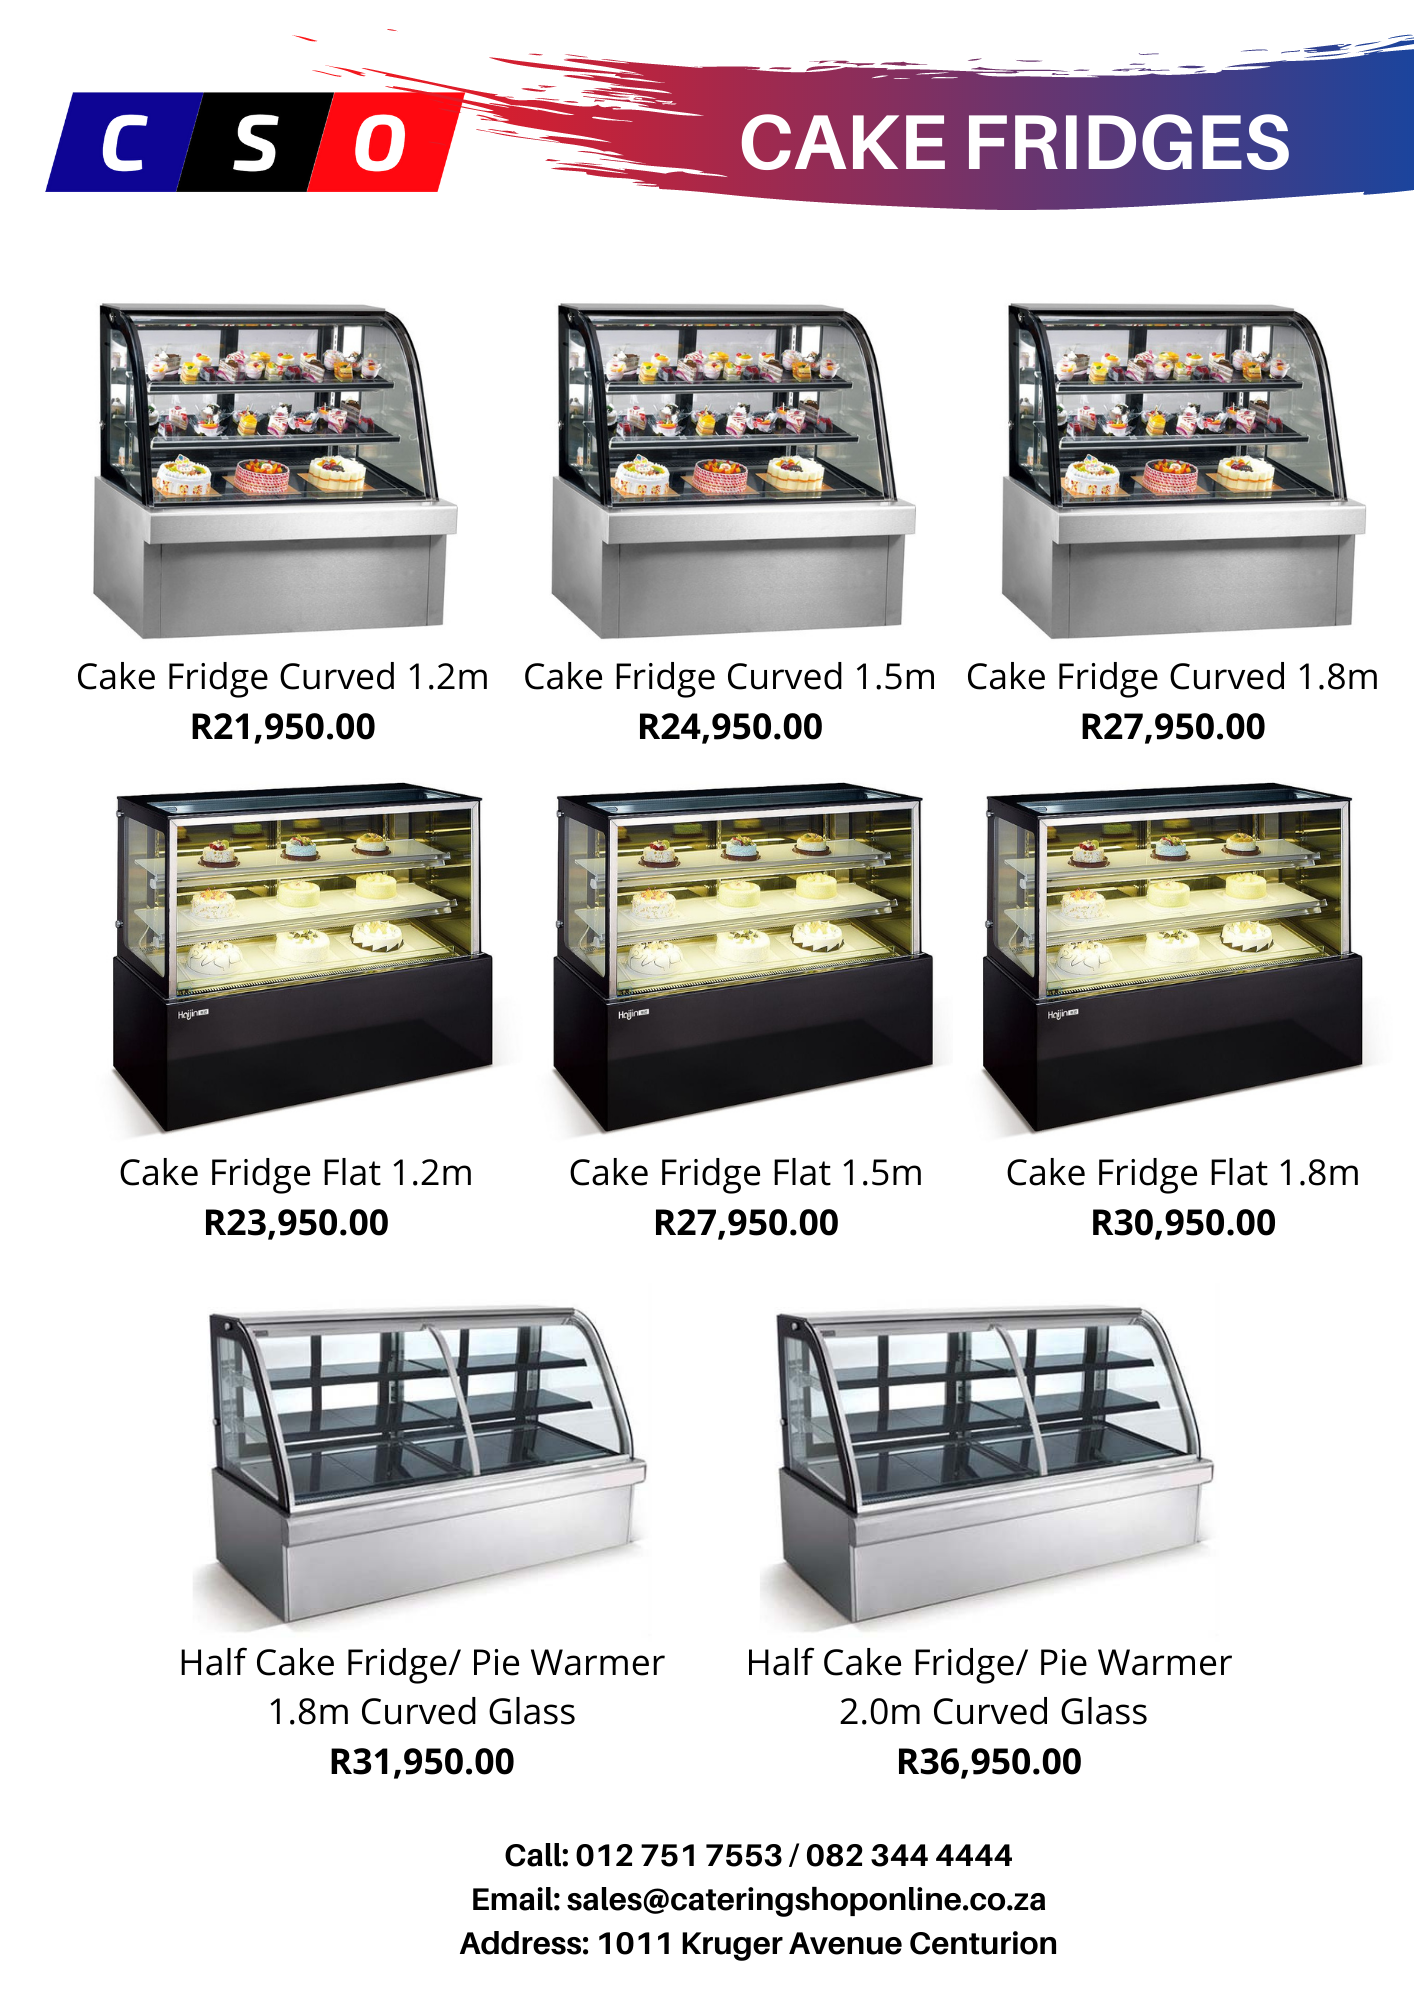 Cake Fridges direct from wholesaler